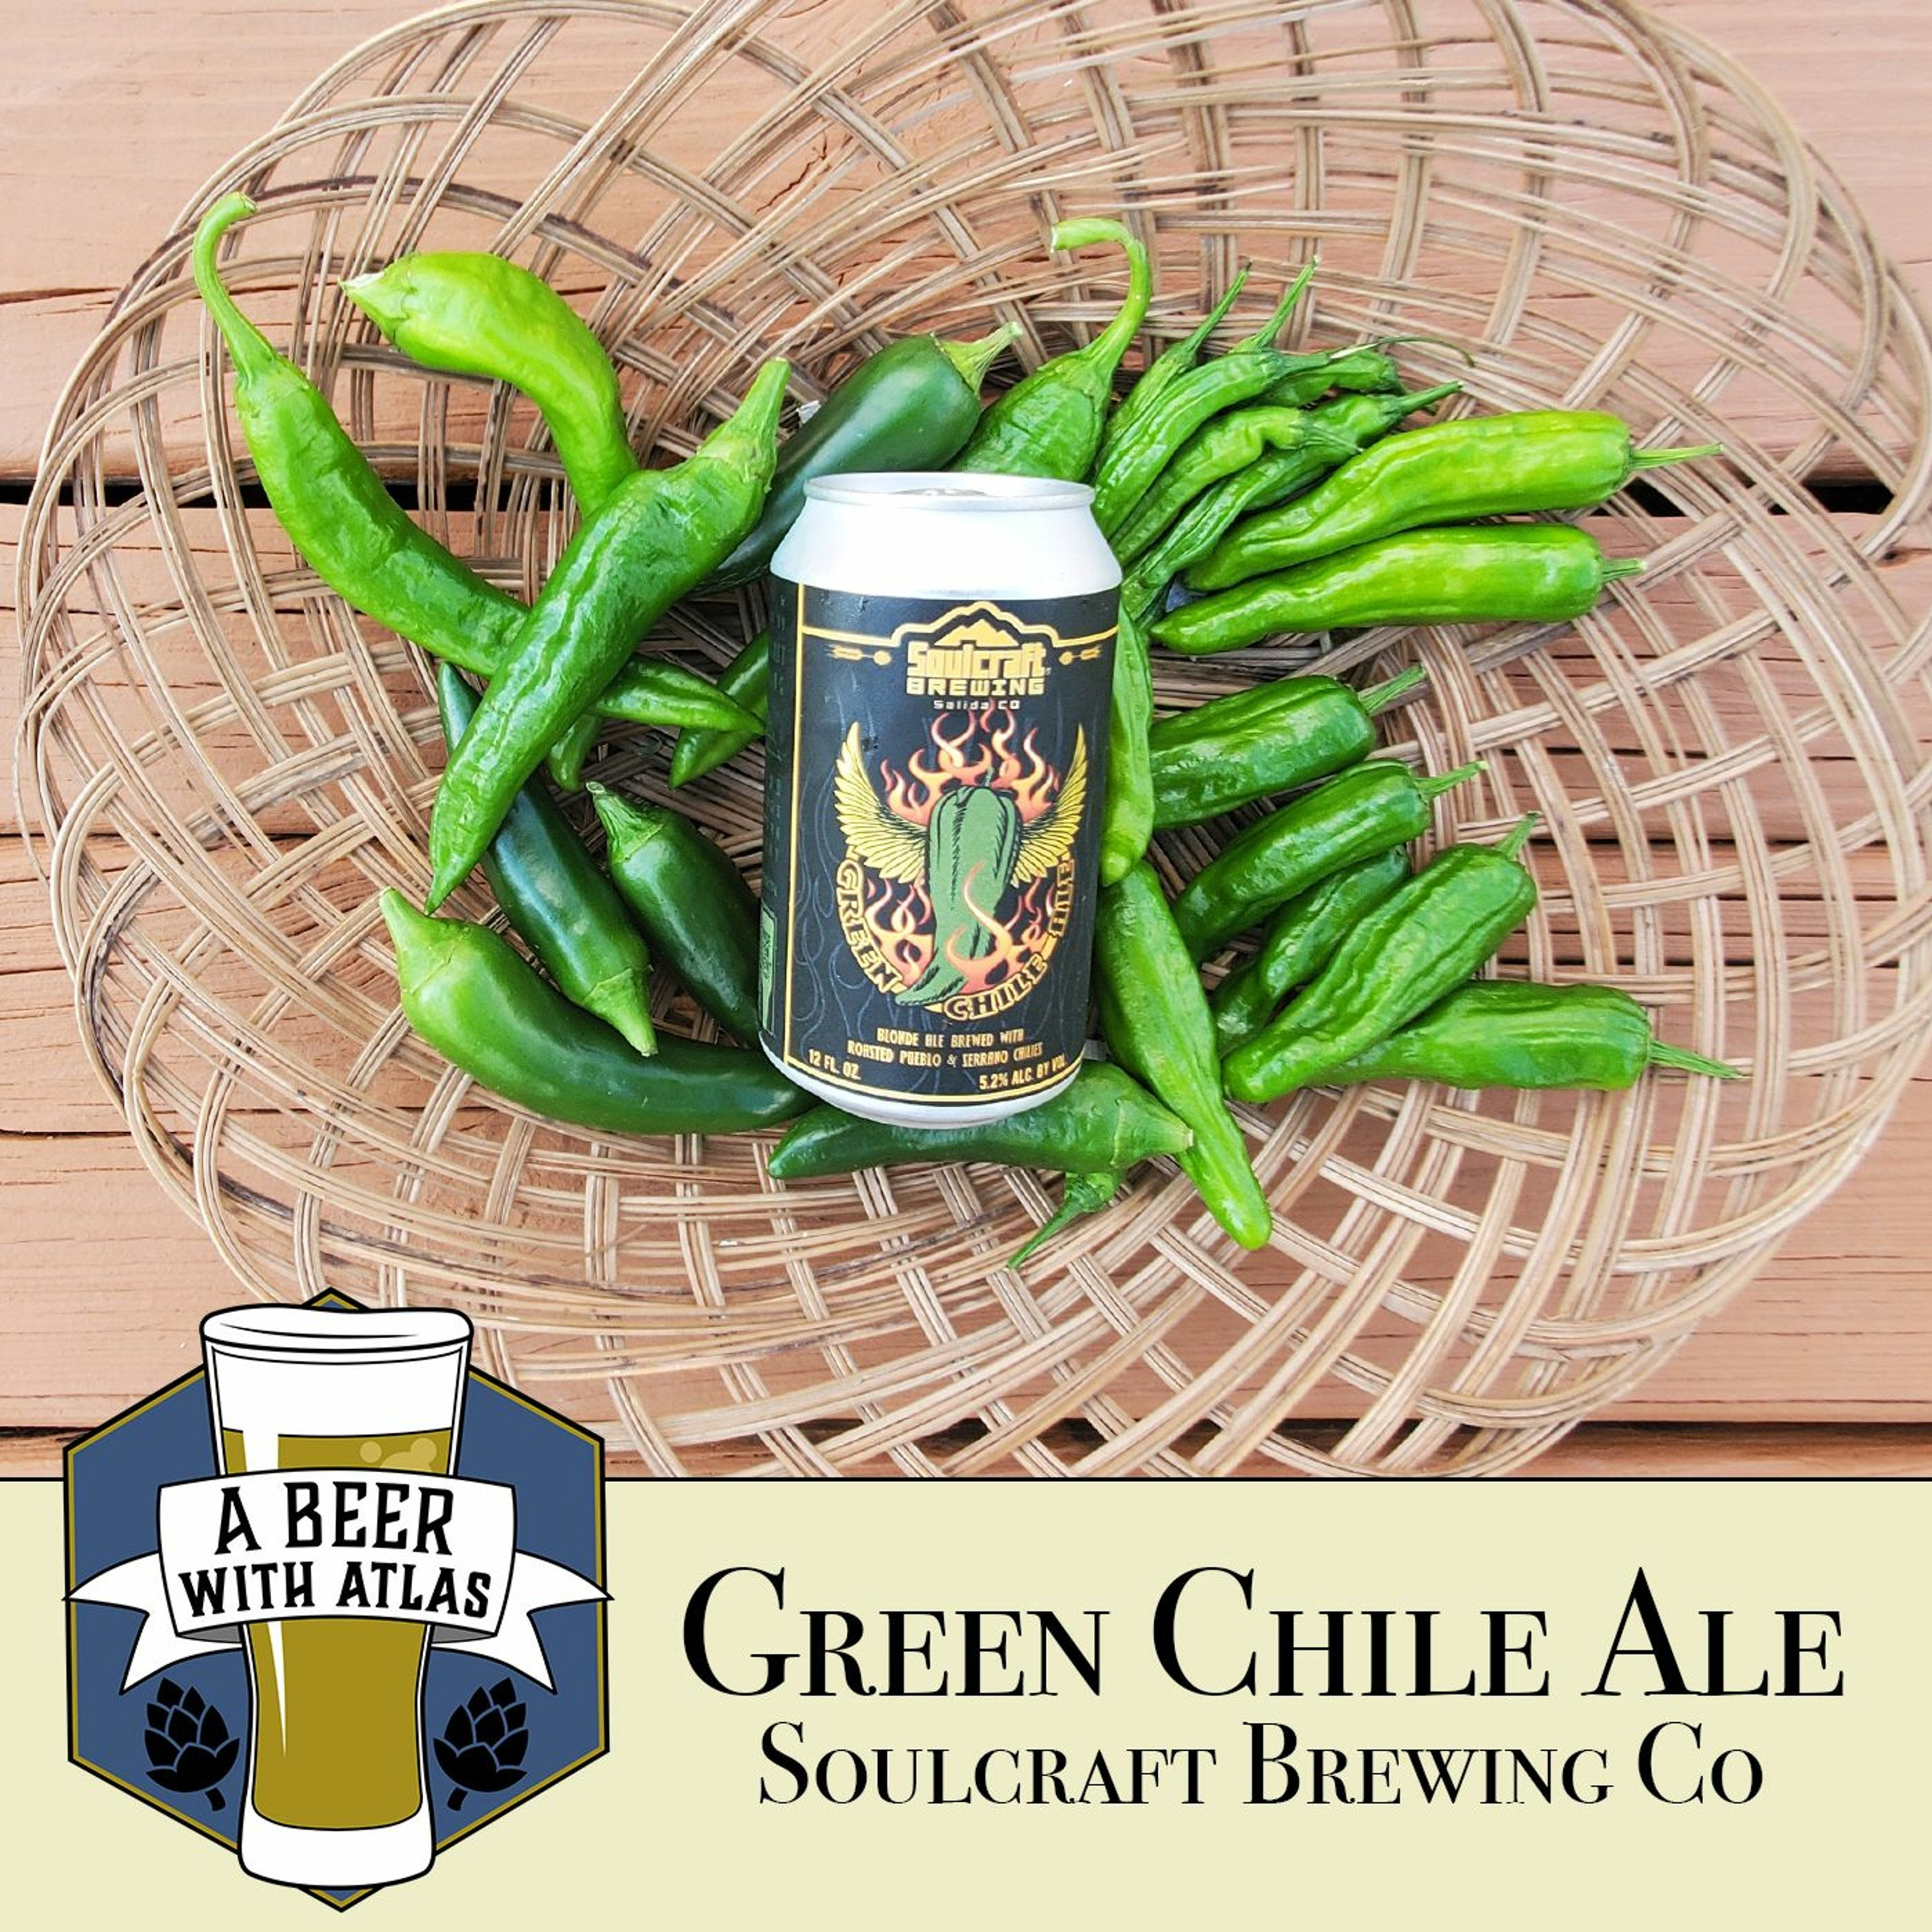 Green Chile Ale from Soulcraft Brewing Company in Salida, CO - A Beer with Atlas 157